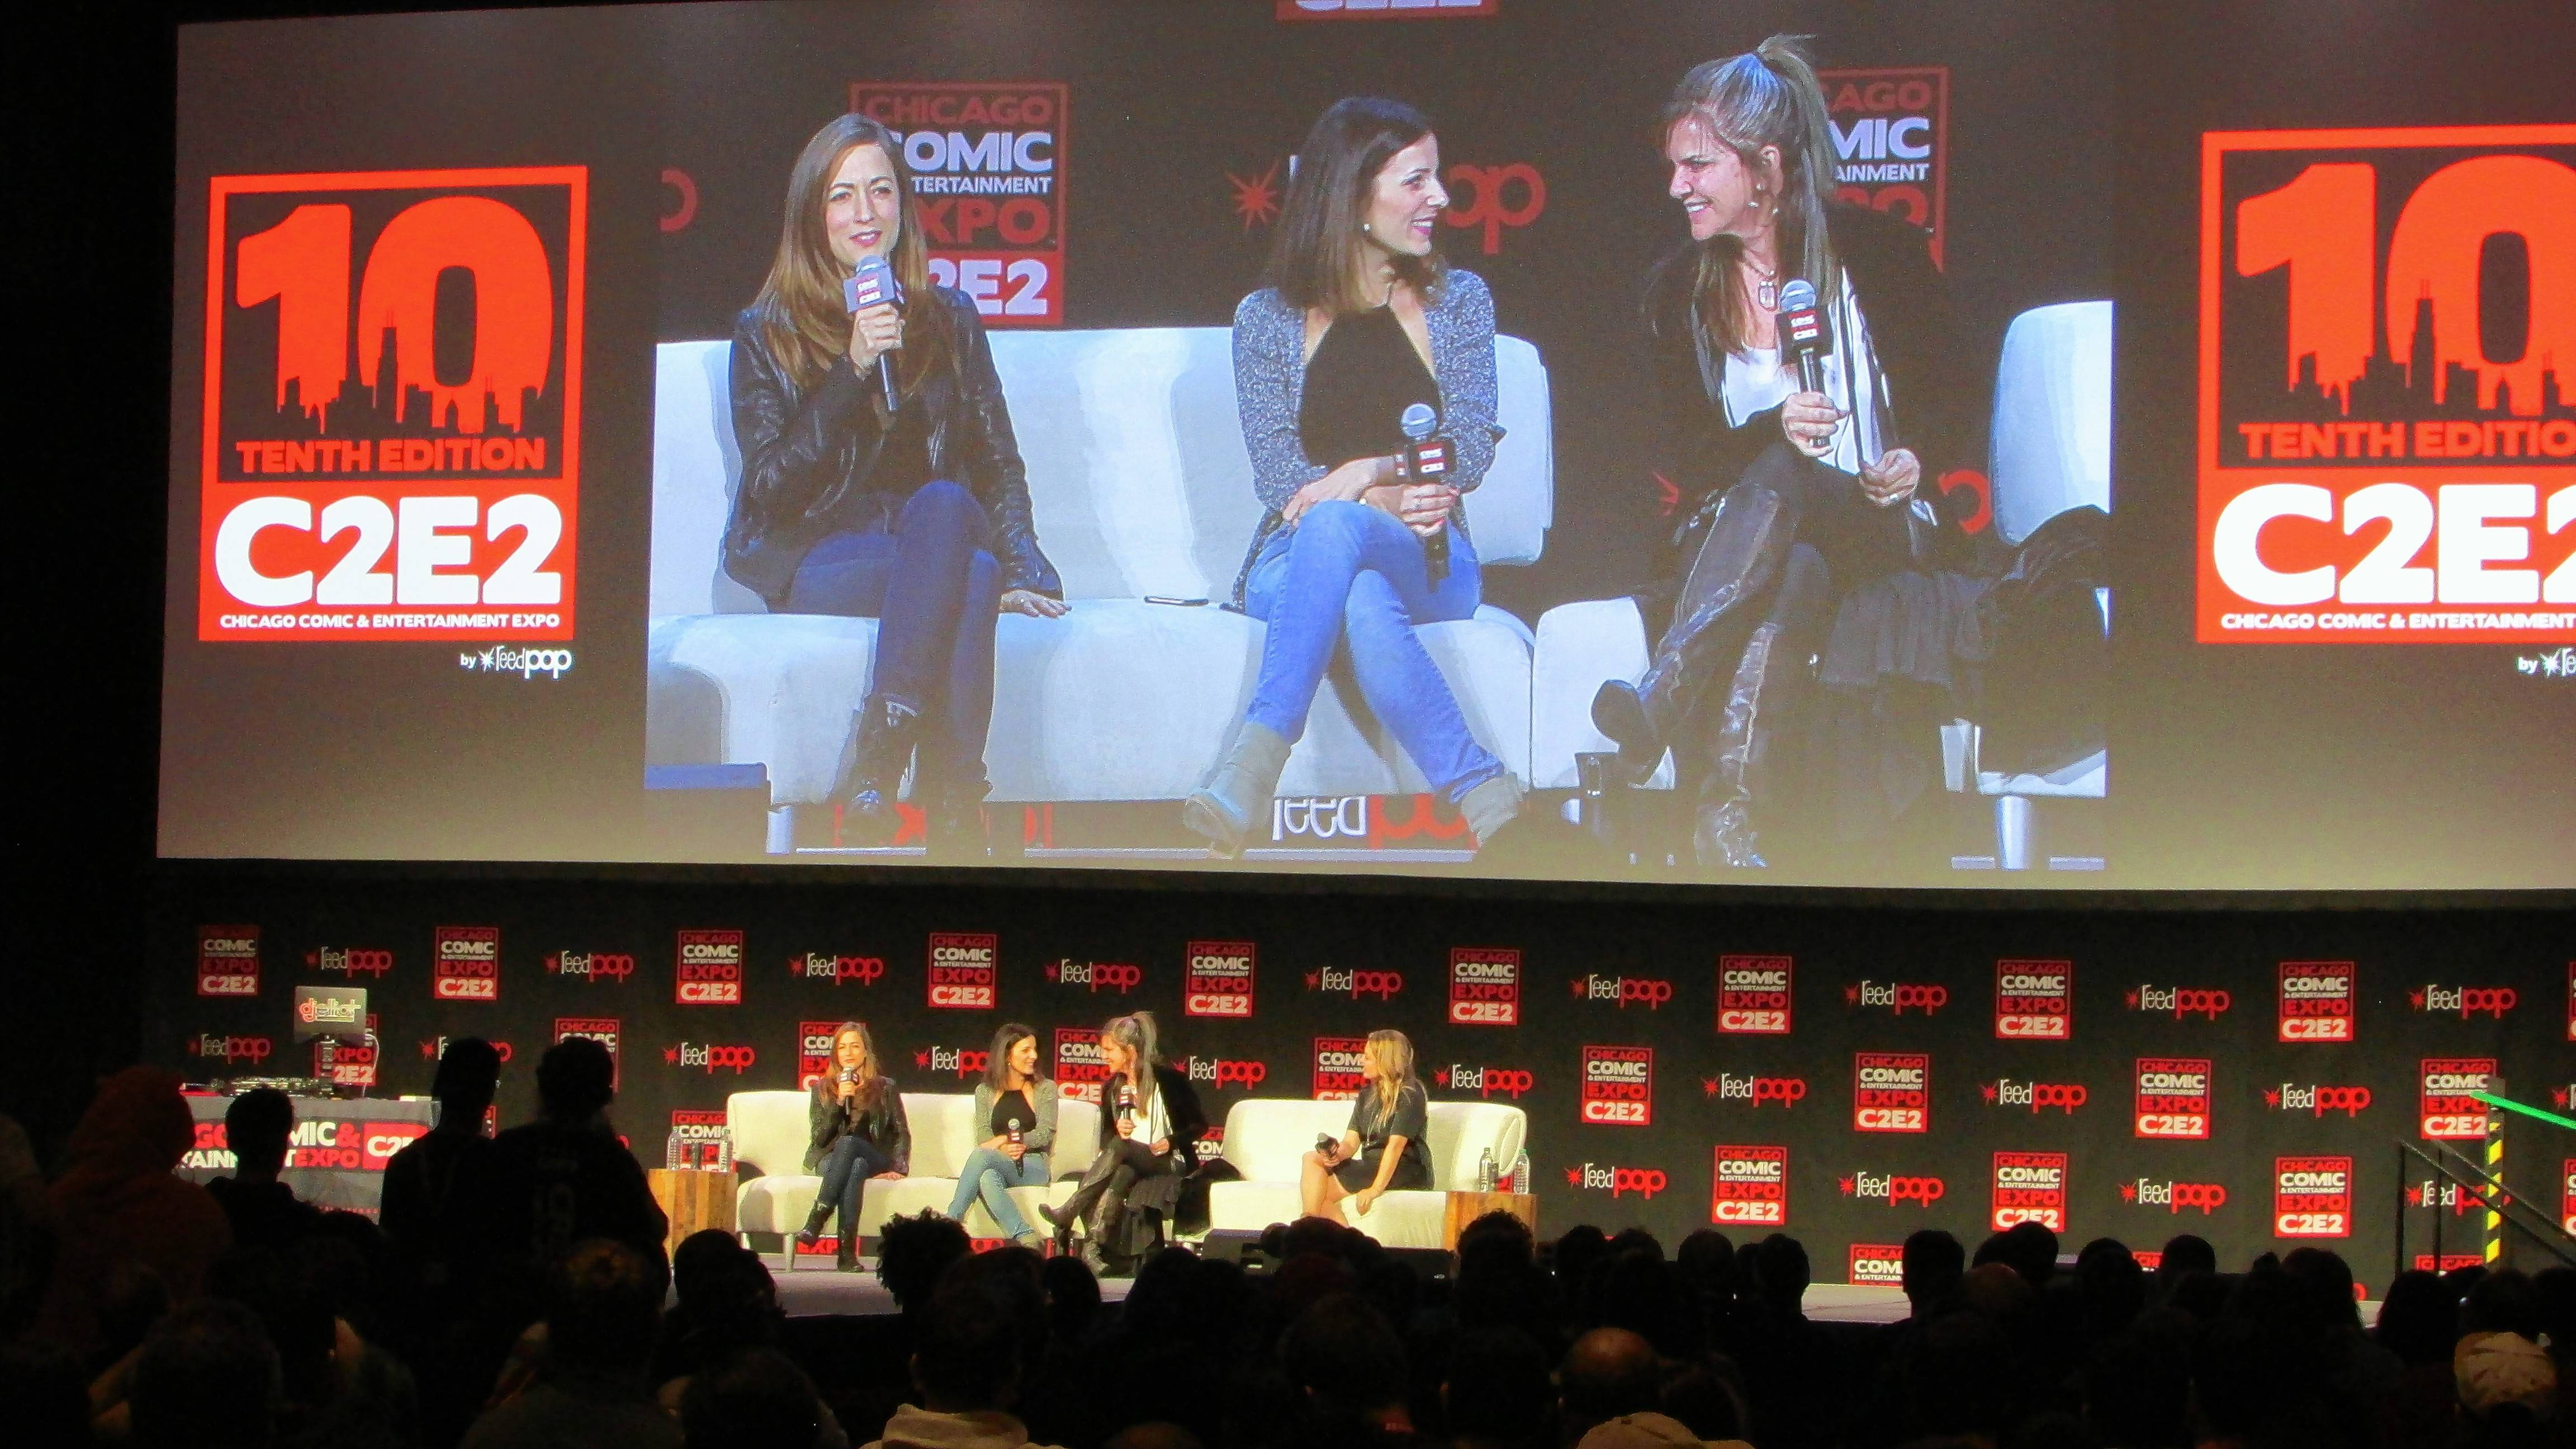 """Overwatch"" voice actresses Carolina Ravassa (Sombra), Lucie Pohl (Mercy) and Jennifer Hale (Ashe) talk to fans from the C2E2 main stage Friday at McCormick Place in Chicago."